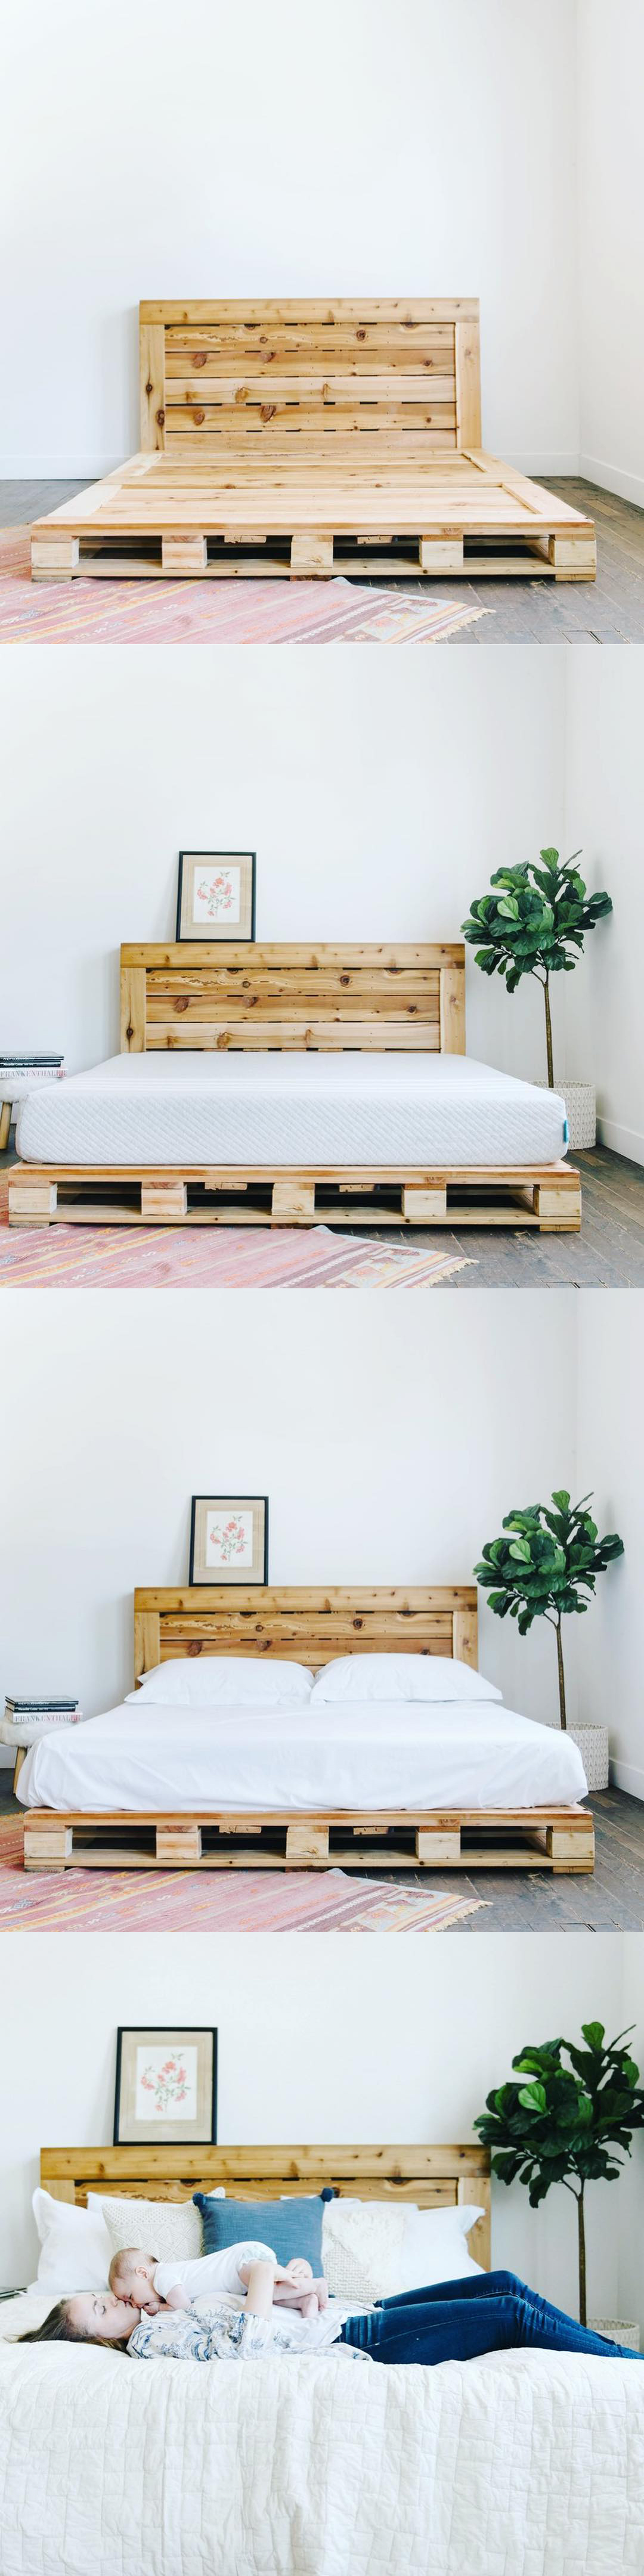 Stylish recycled pallet projects | Artistic & Amazing 2019 Pallet projects